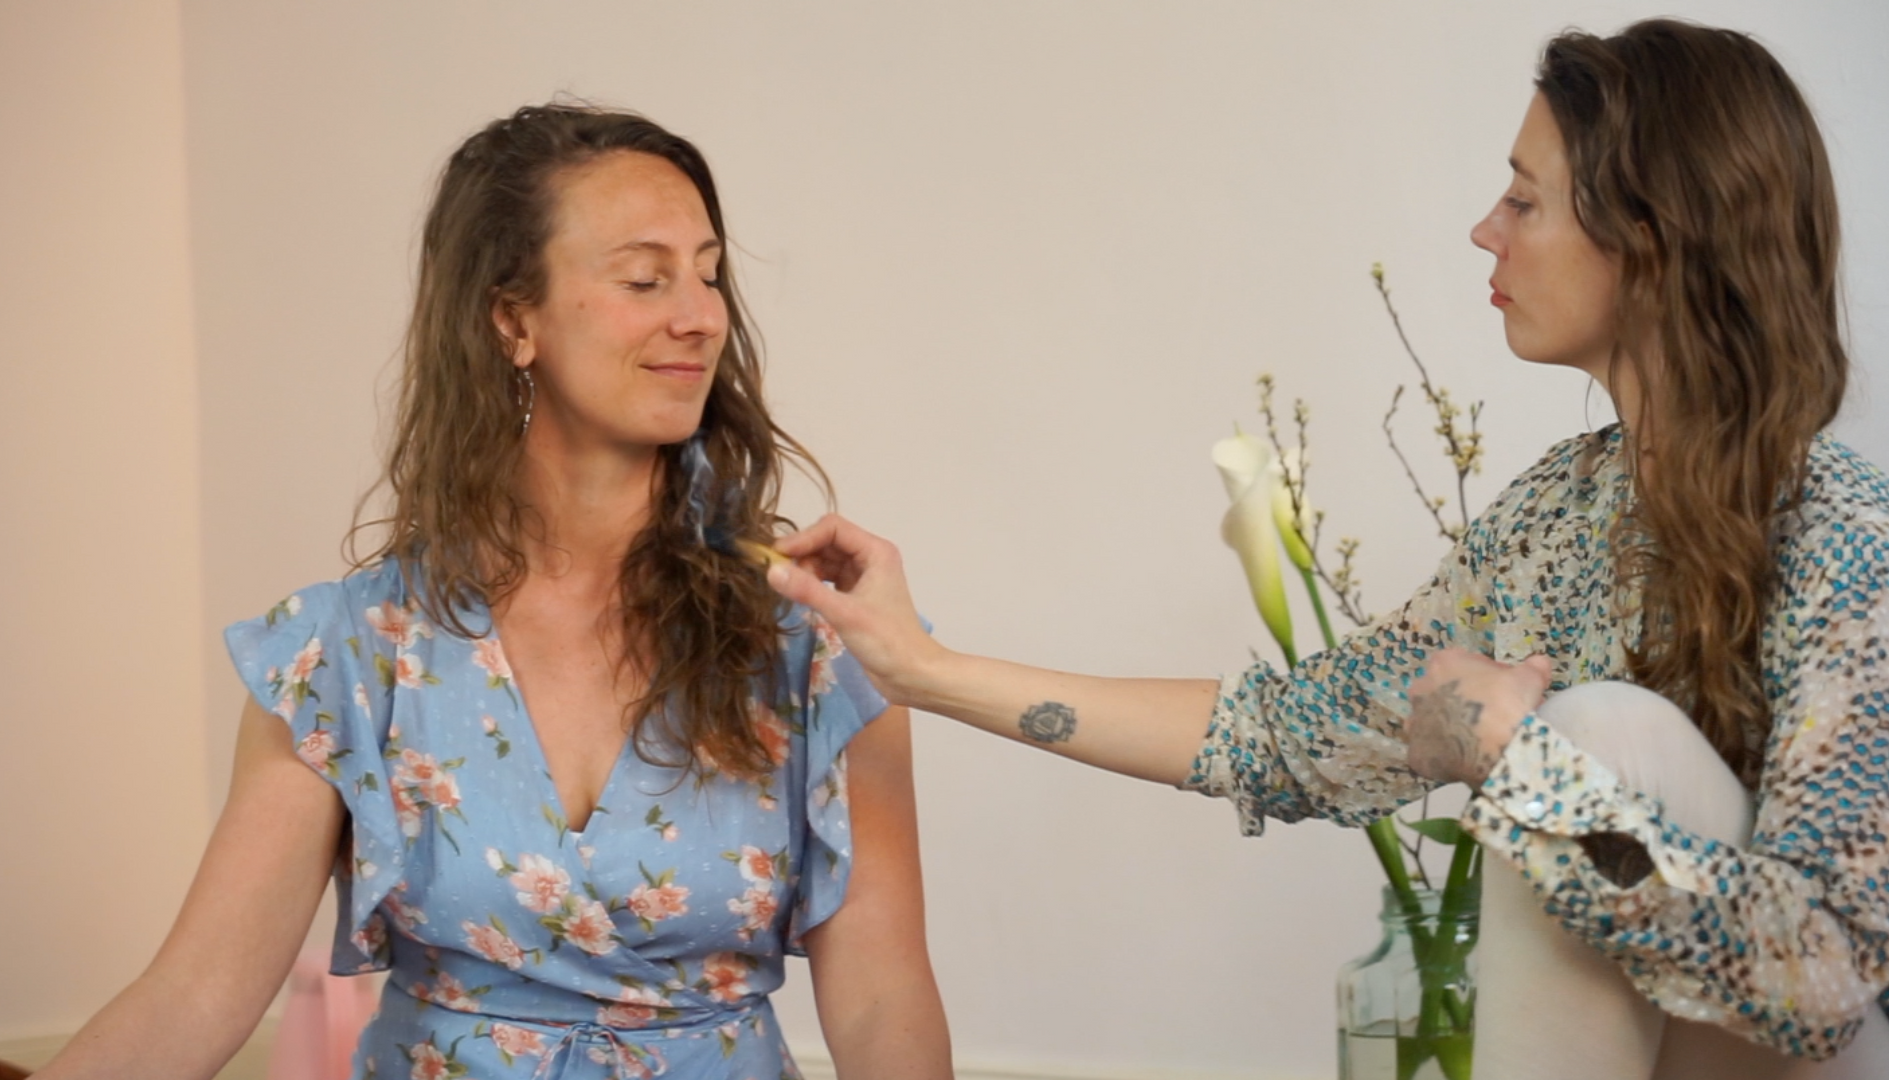 Julia smudging her friend Anna with Palo Santo